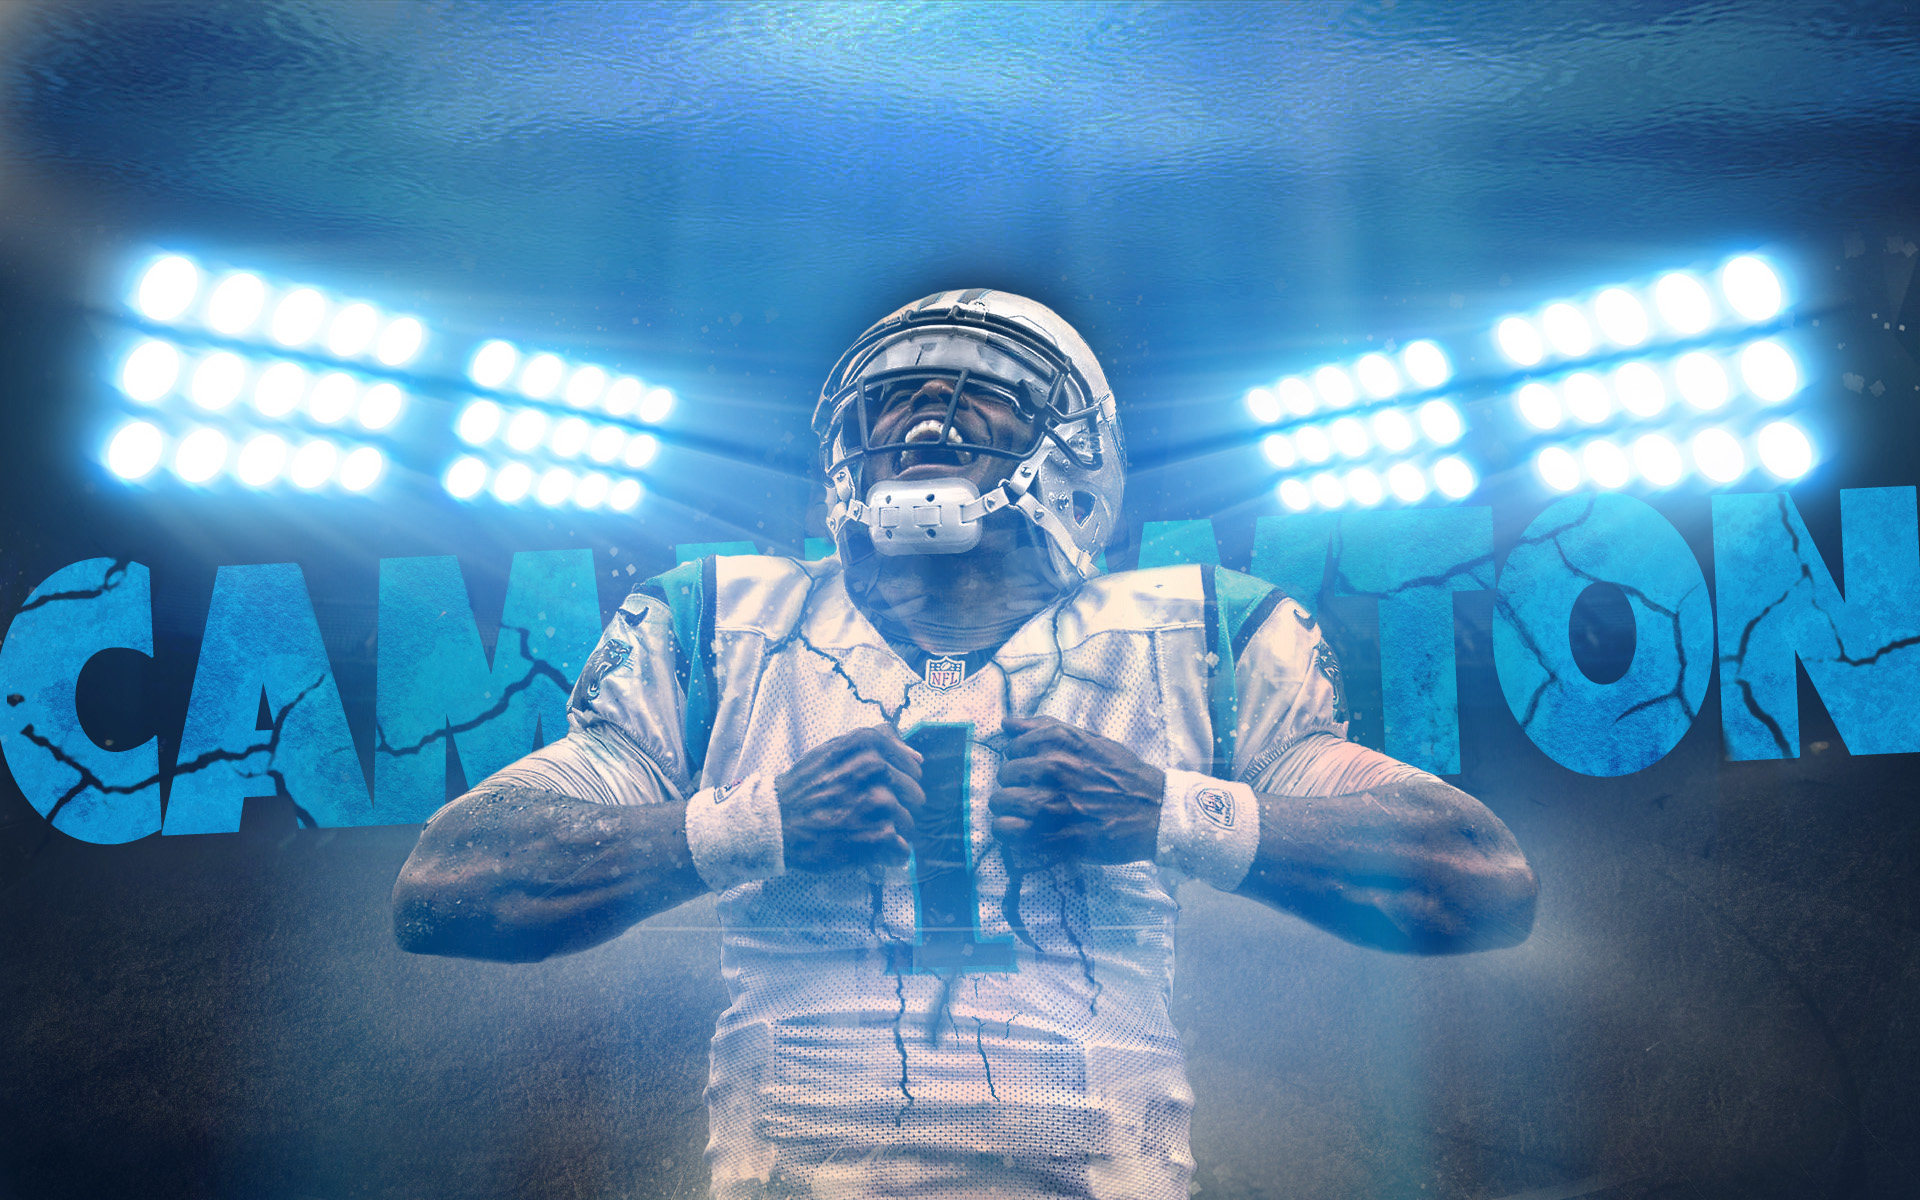 cam newton carolina panthers wallpaper by 31andonly on